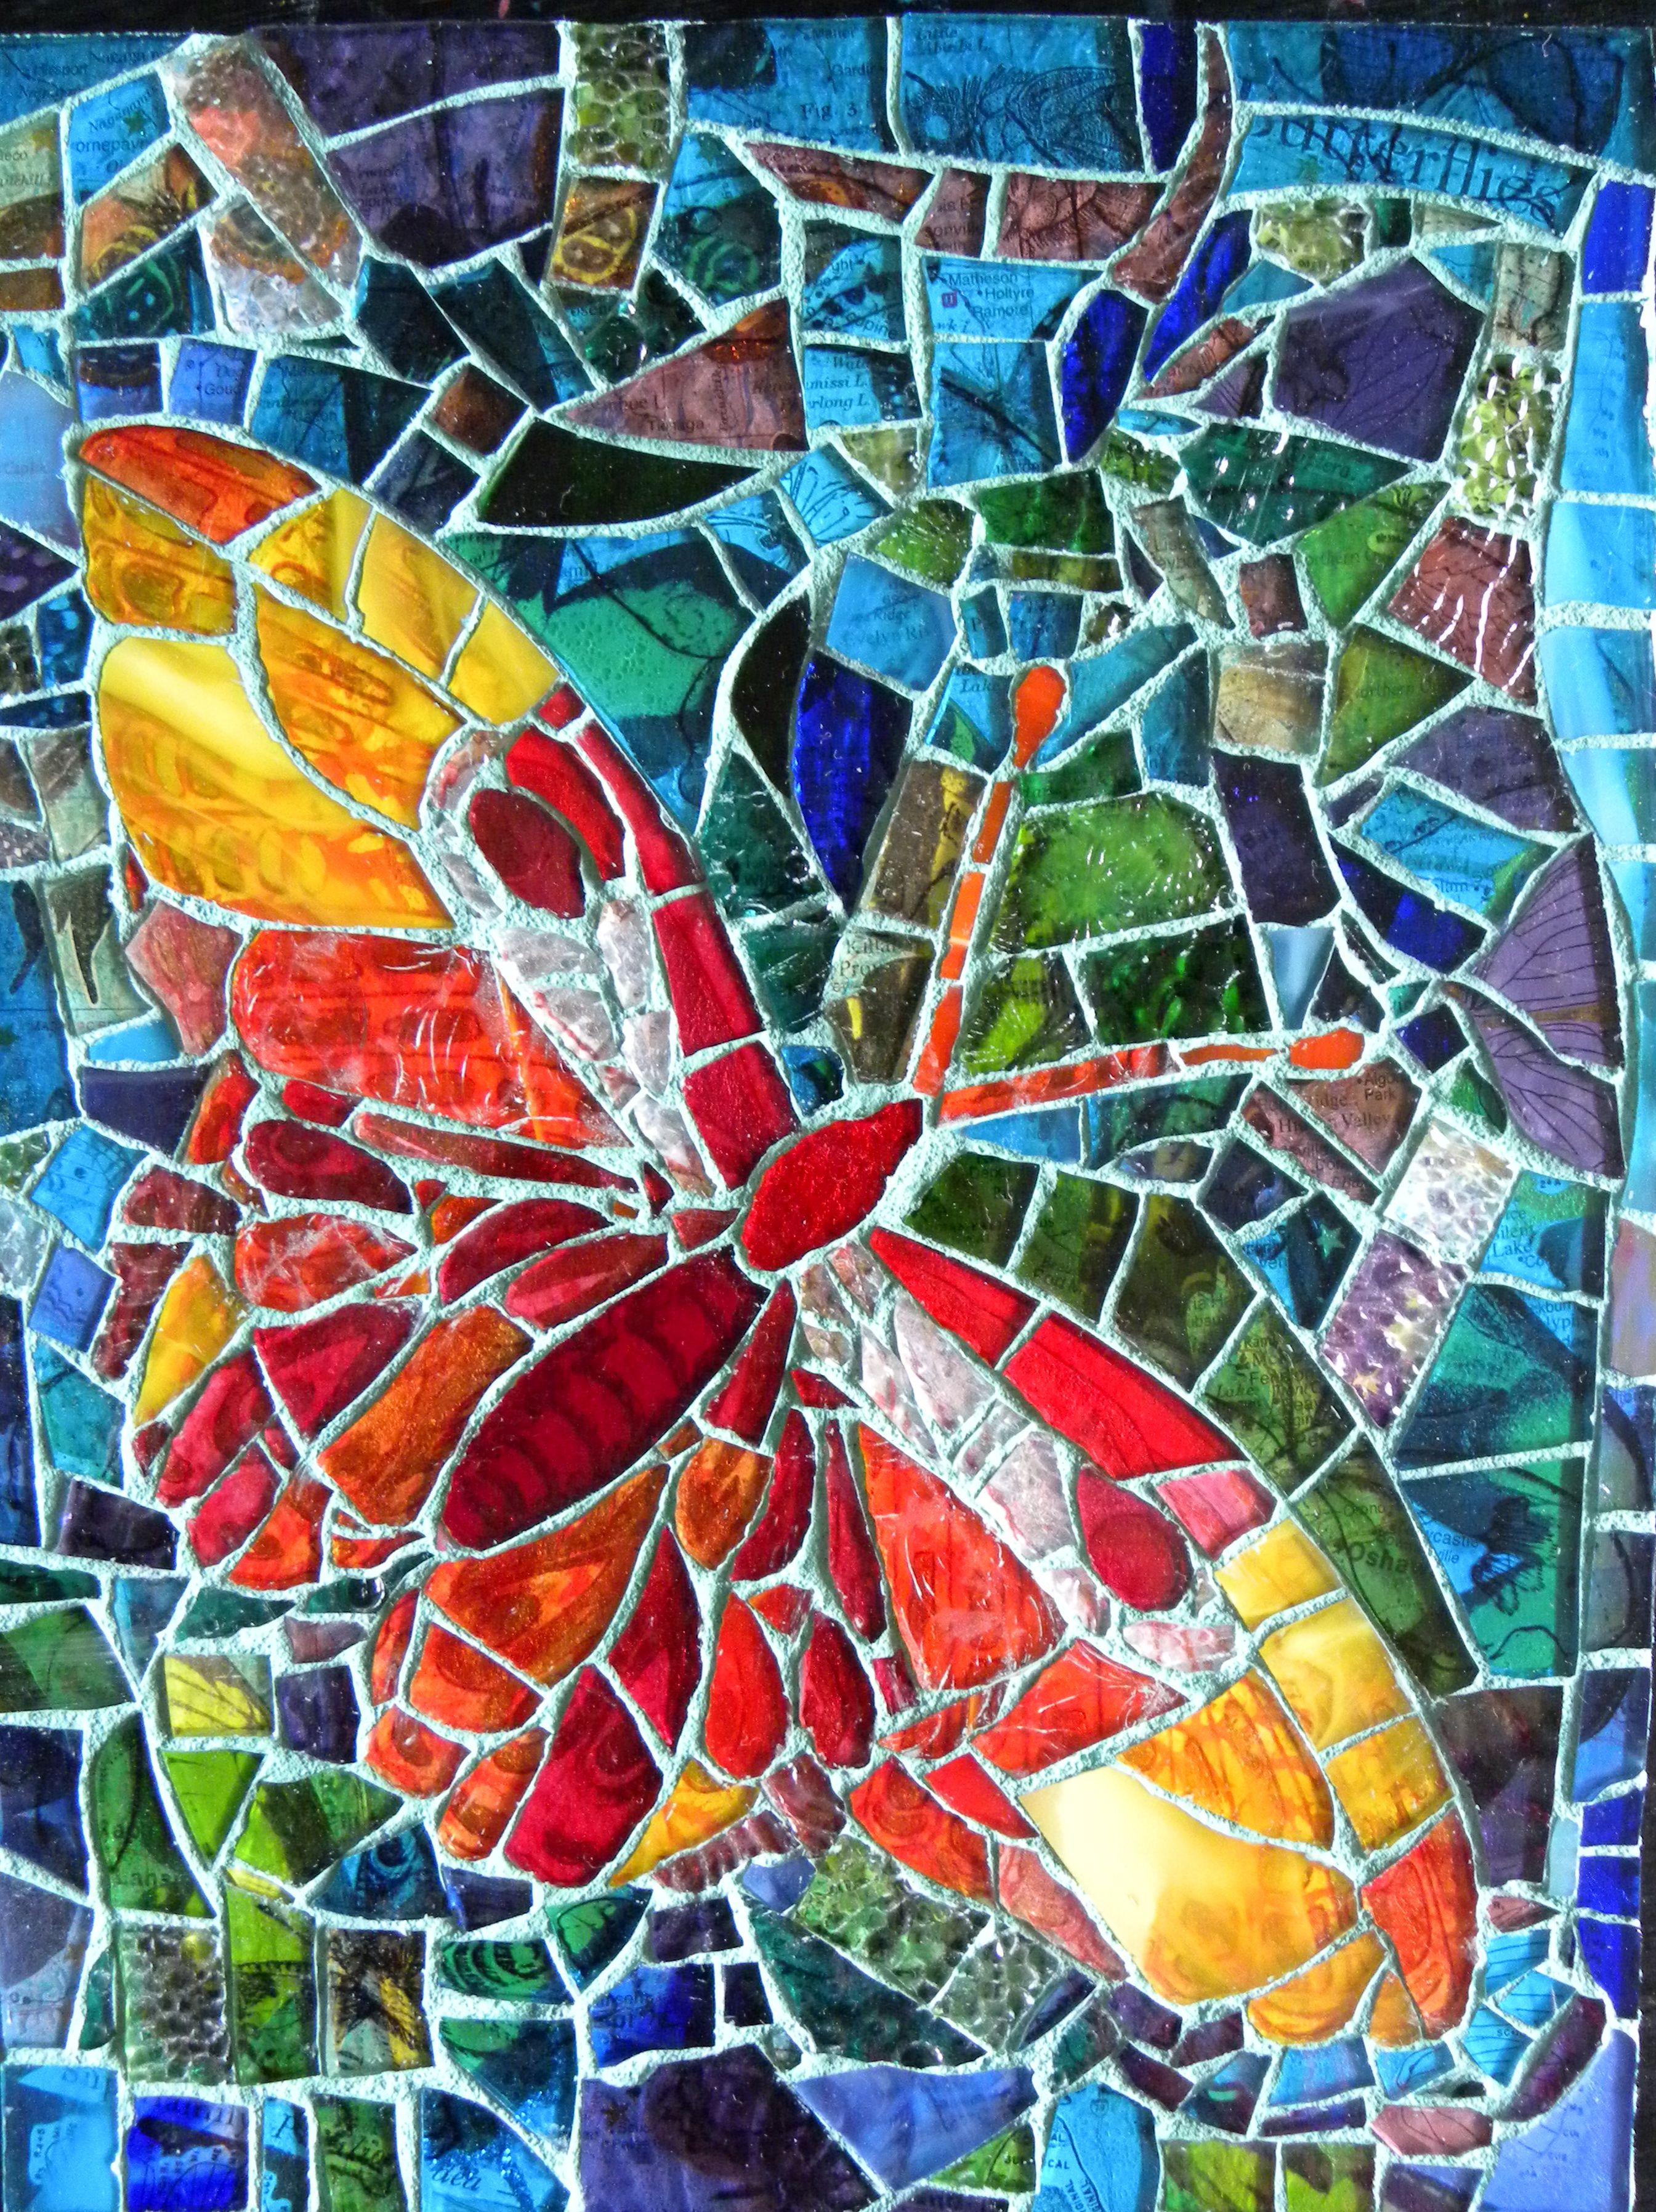 Sold custom made butterfly mosaic table top for mary ann in texas - Colorful Butterfly Mosaic Mosaicbutterflies Mosaicanimals